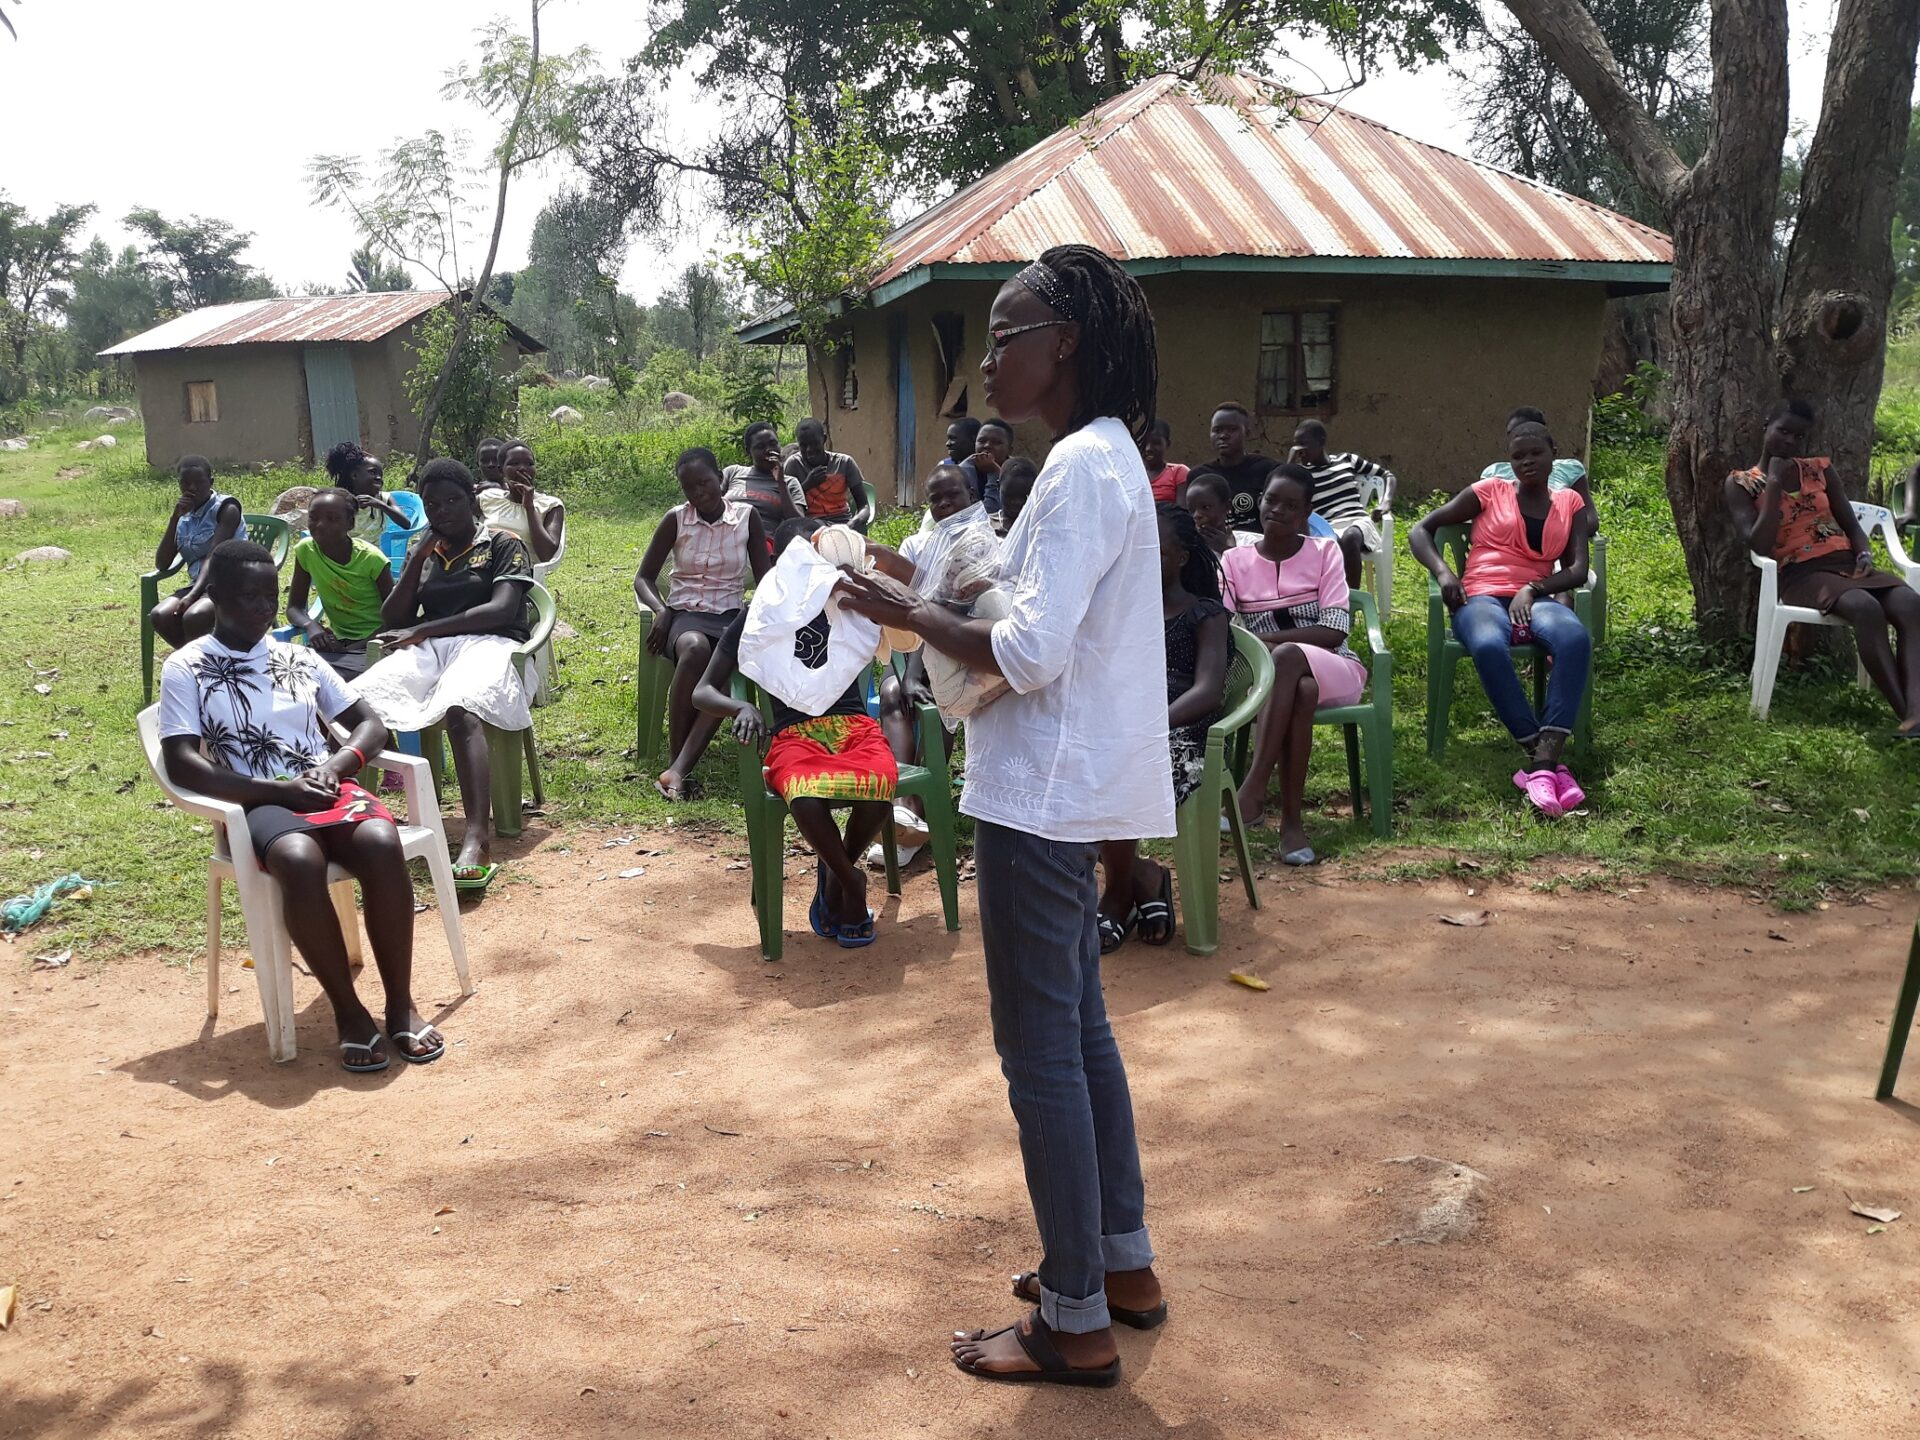 Dorothy Dulo teaches a hygiene class at a village in Kenya. (Photo: Provided)